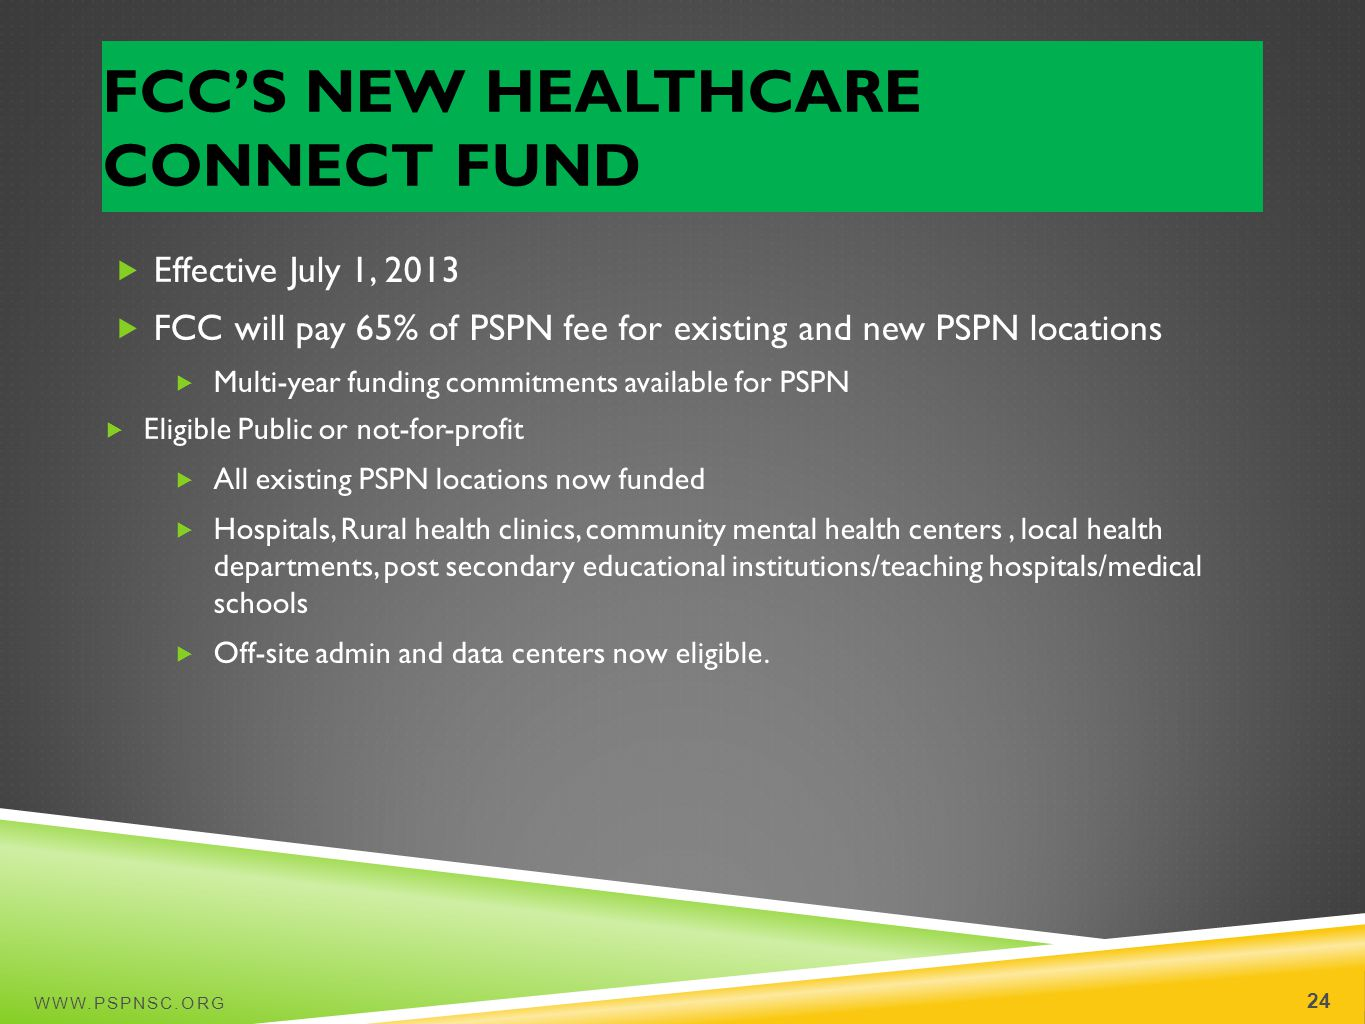 FCC's New Healthcare Connect Fund